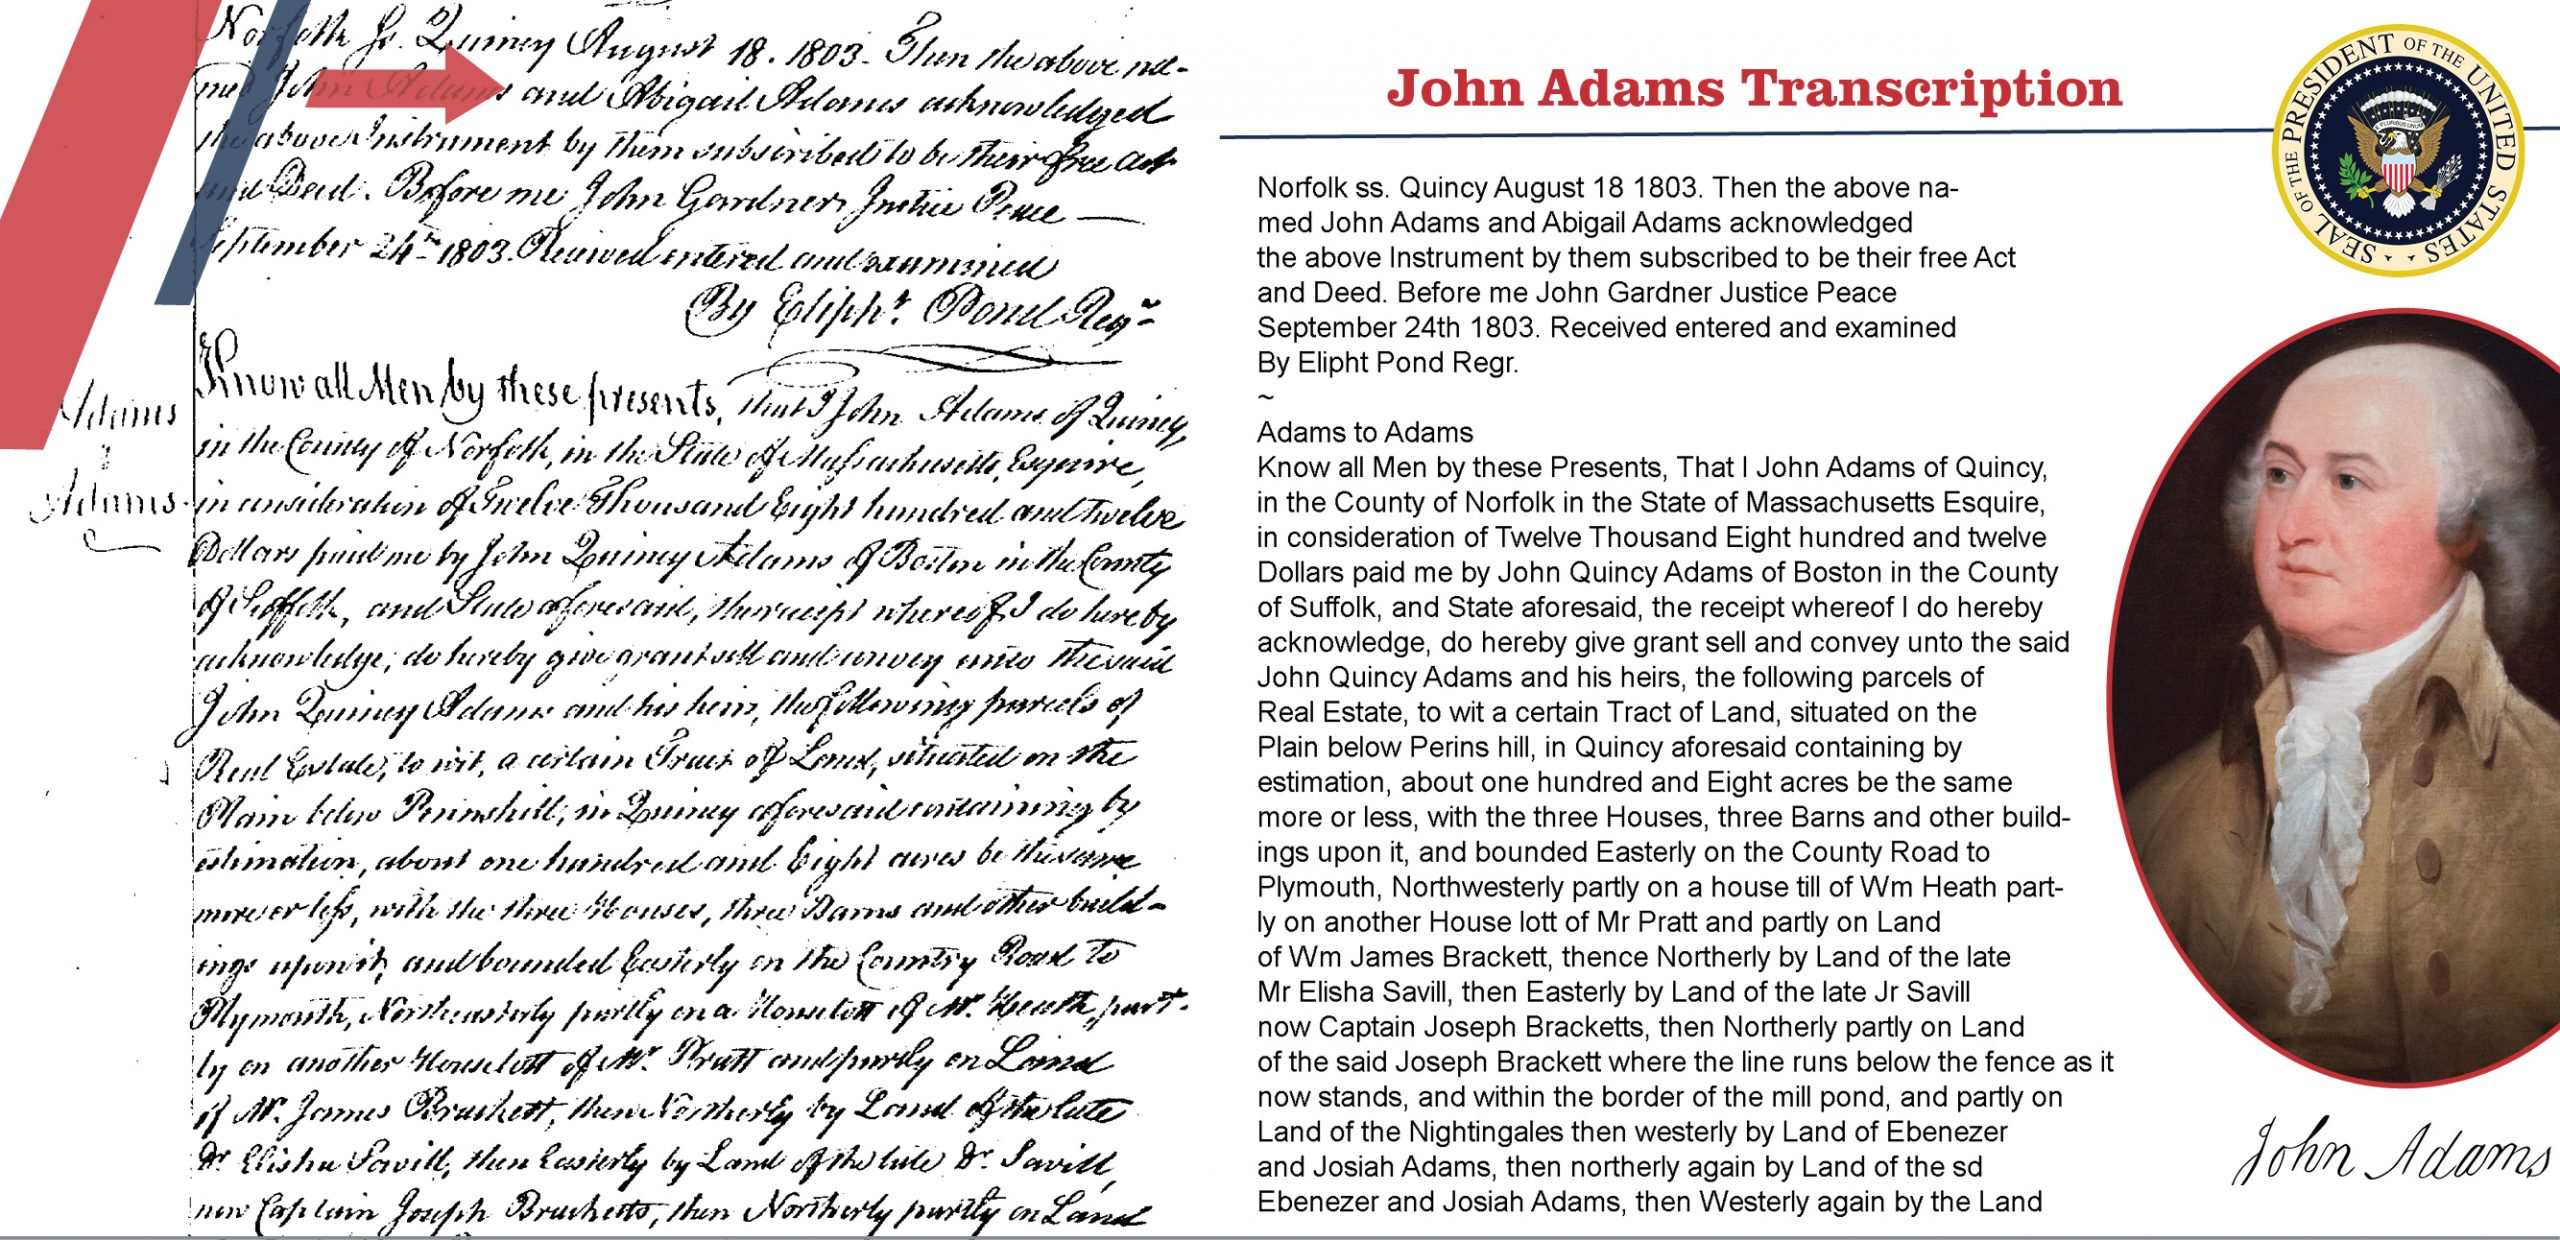 Document Preservation: A Window into the Relationship of Two Presidents